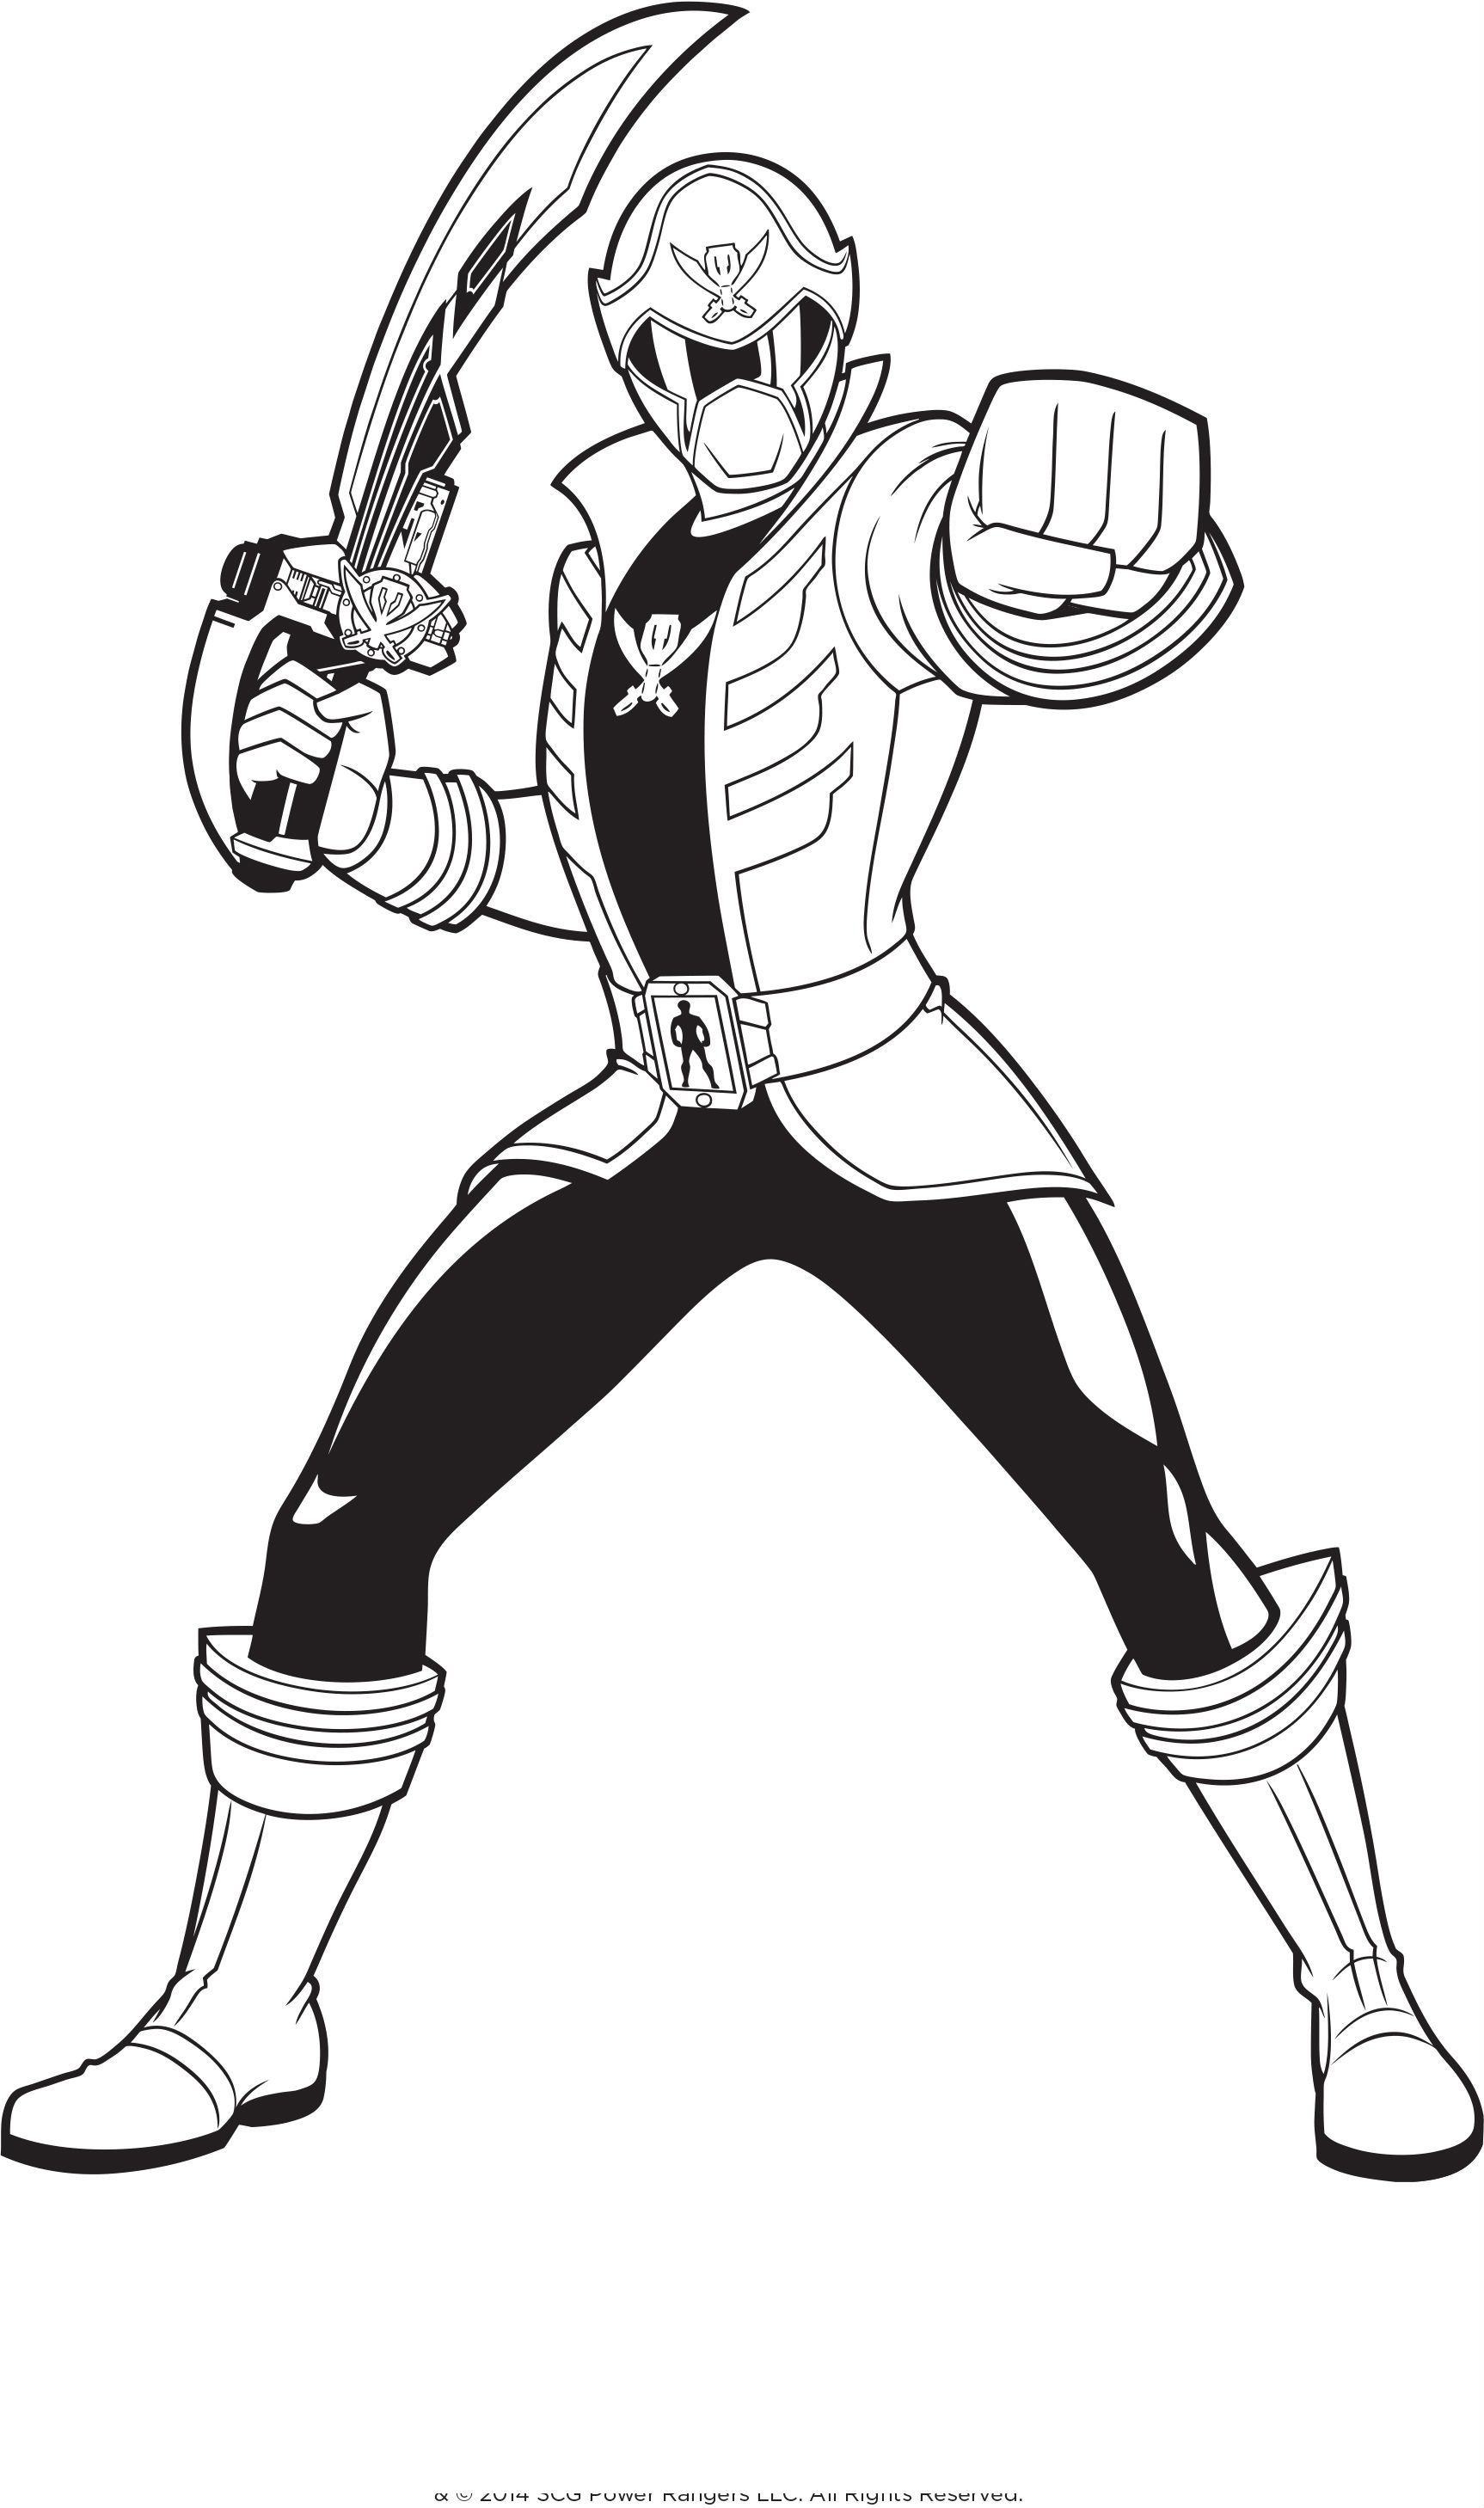 Coloring Pages Power Ranger Printable Coloring Pages power ranger printable coloring pages eassume com eassume